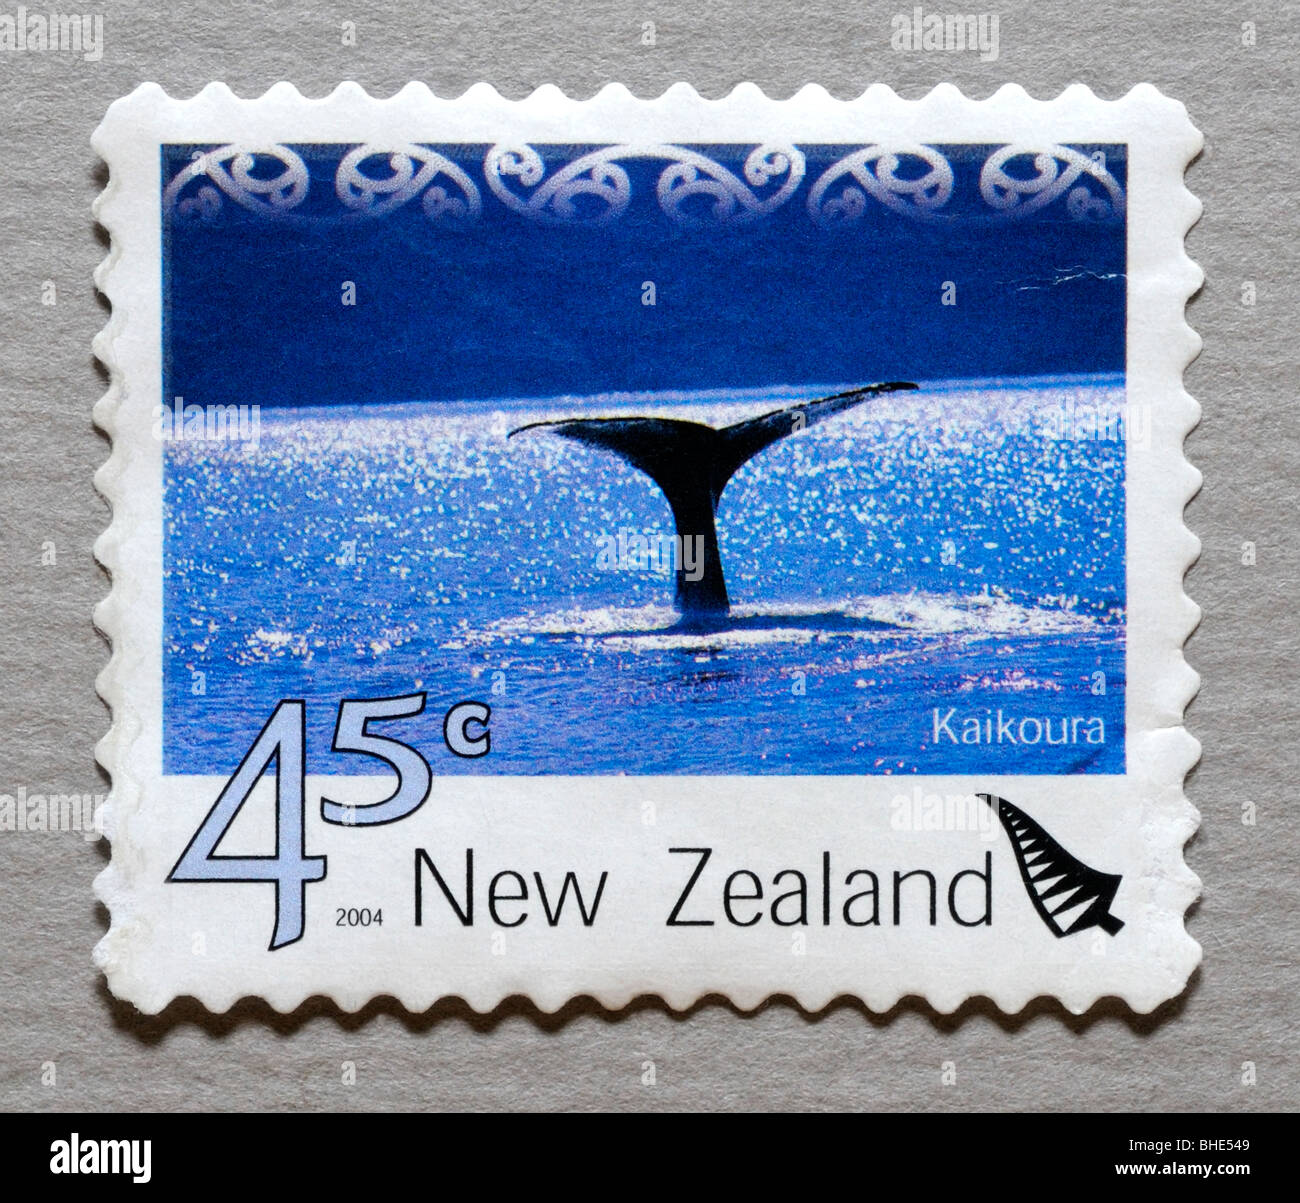 New Zealand Postage Stamp - Stock Image